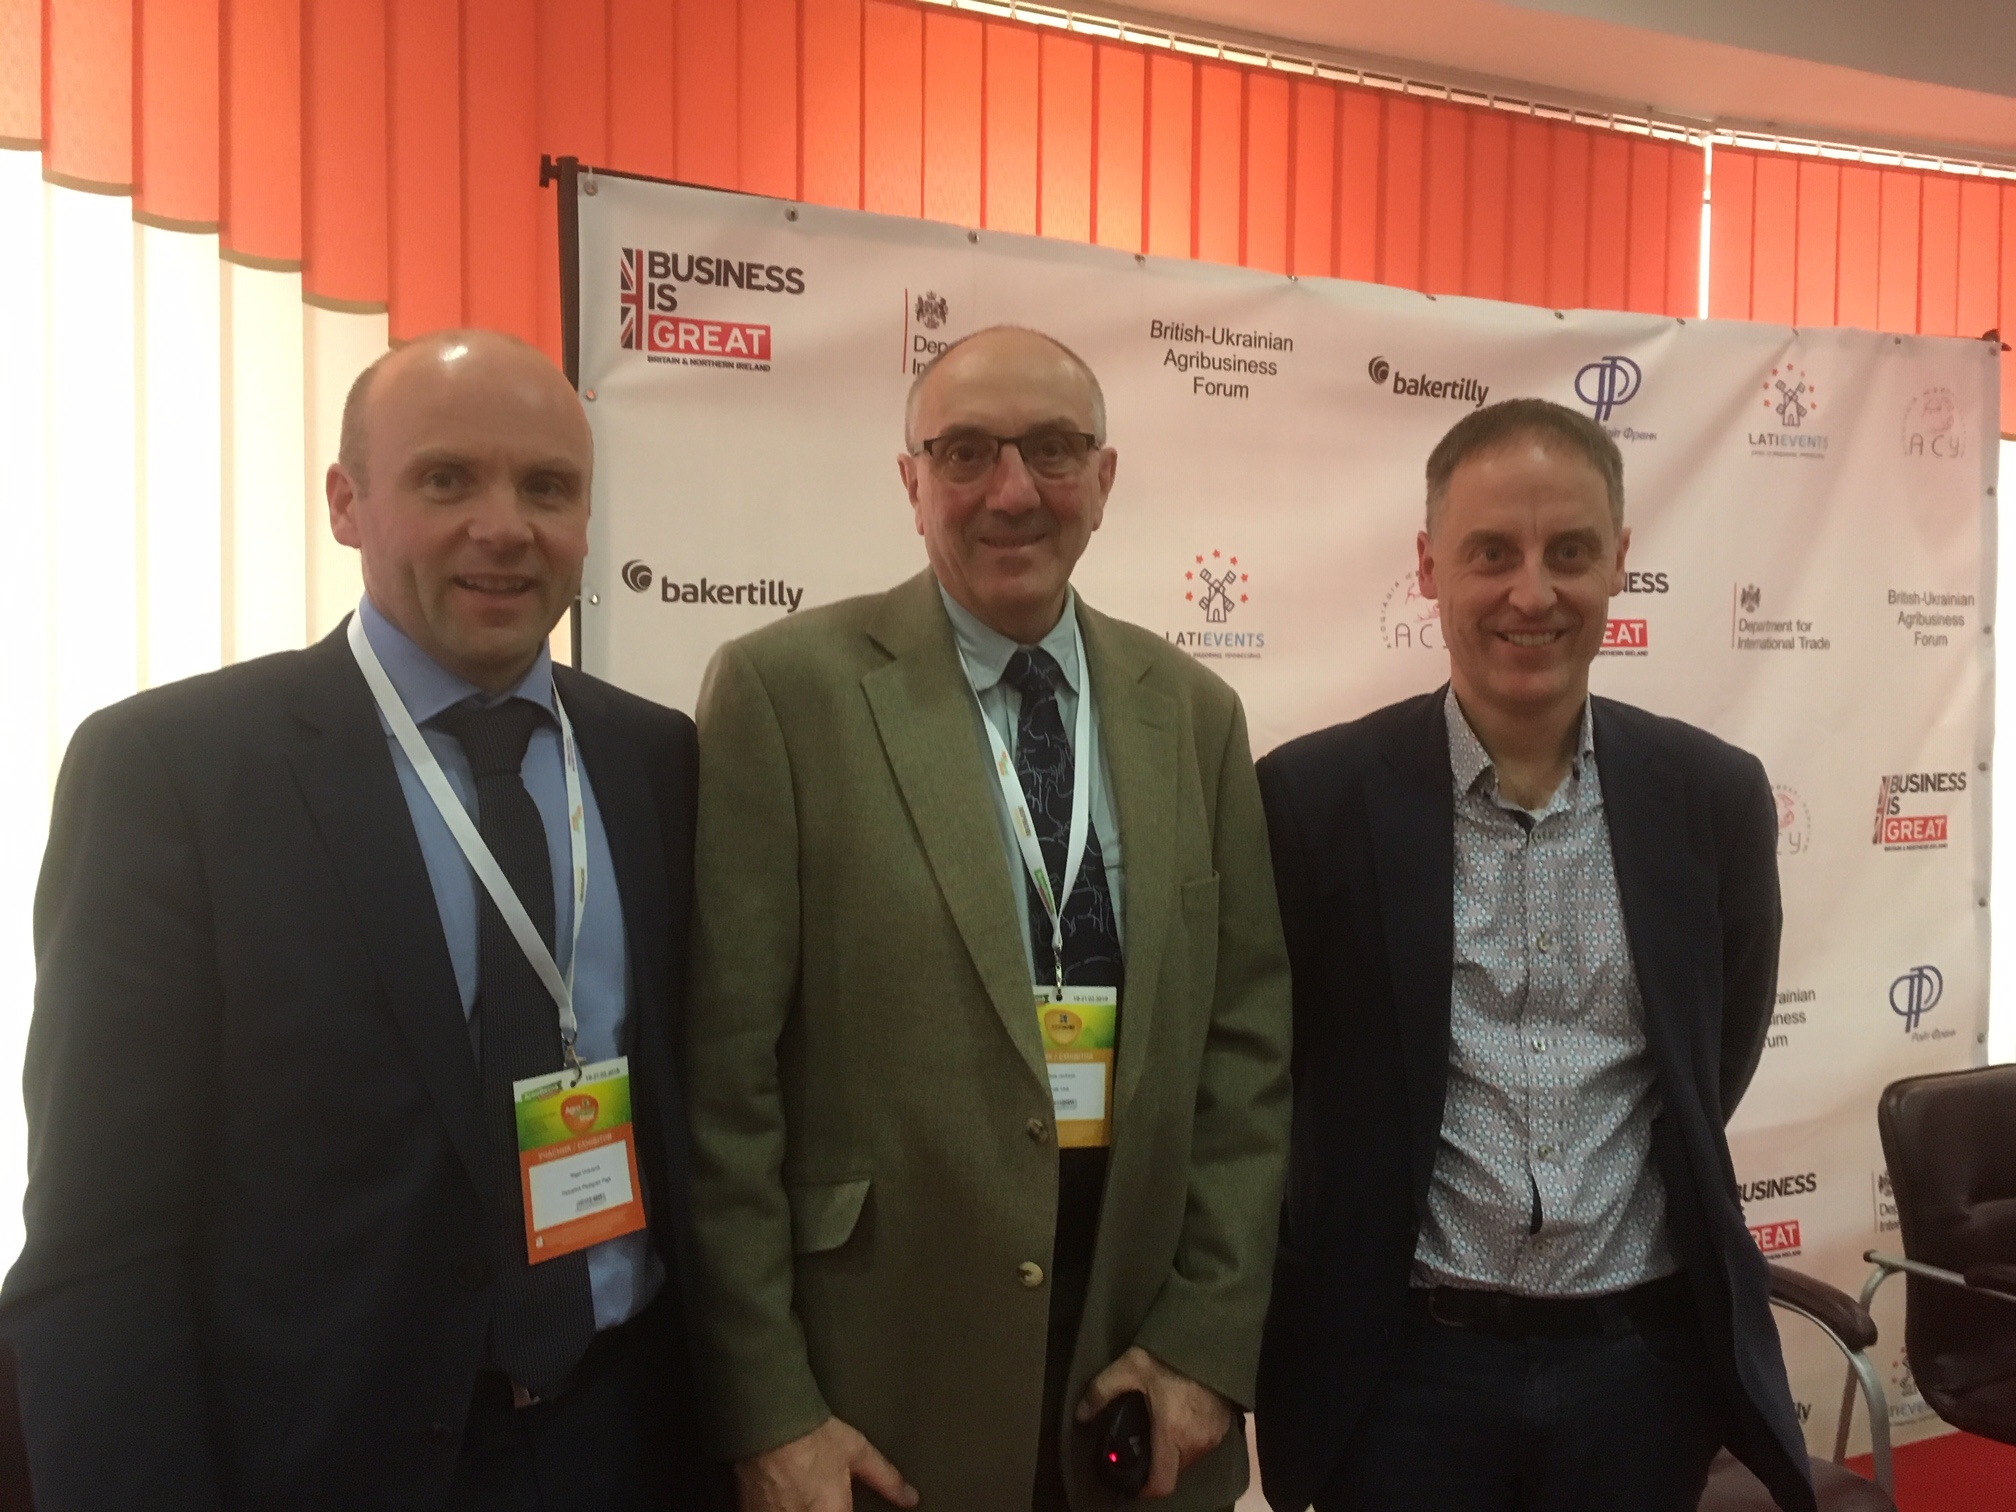 Speakers at the Pig Forum included (L-R) Nigel Overend, Chris Jackson & Geert Rombouts